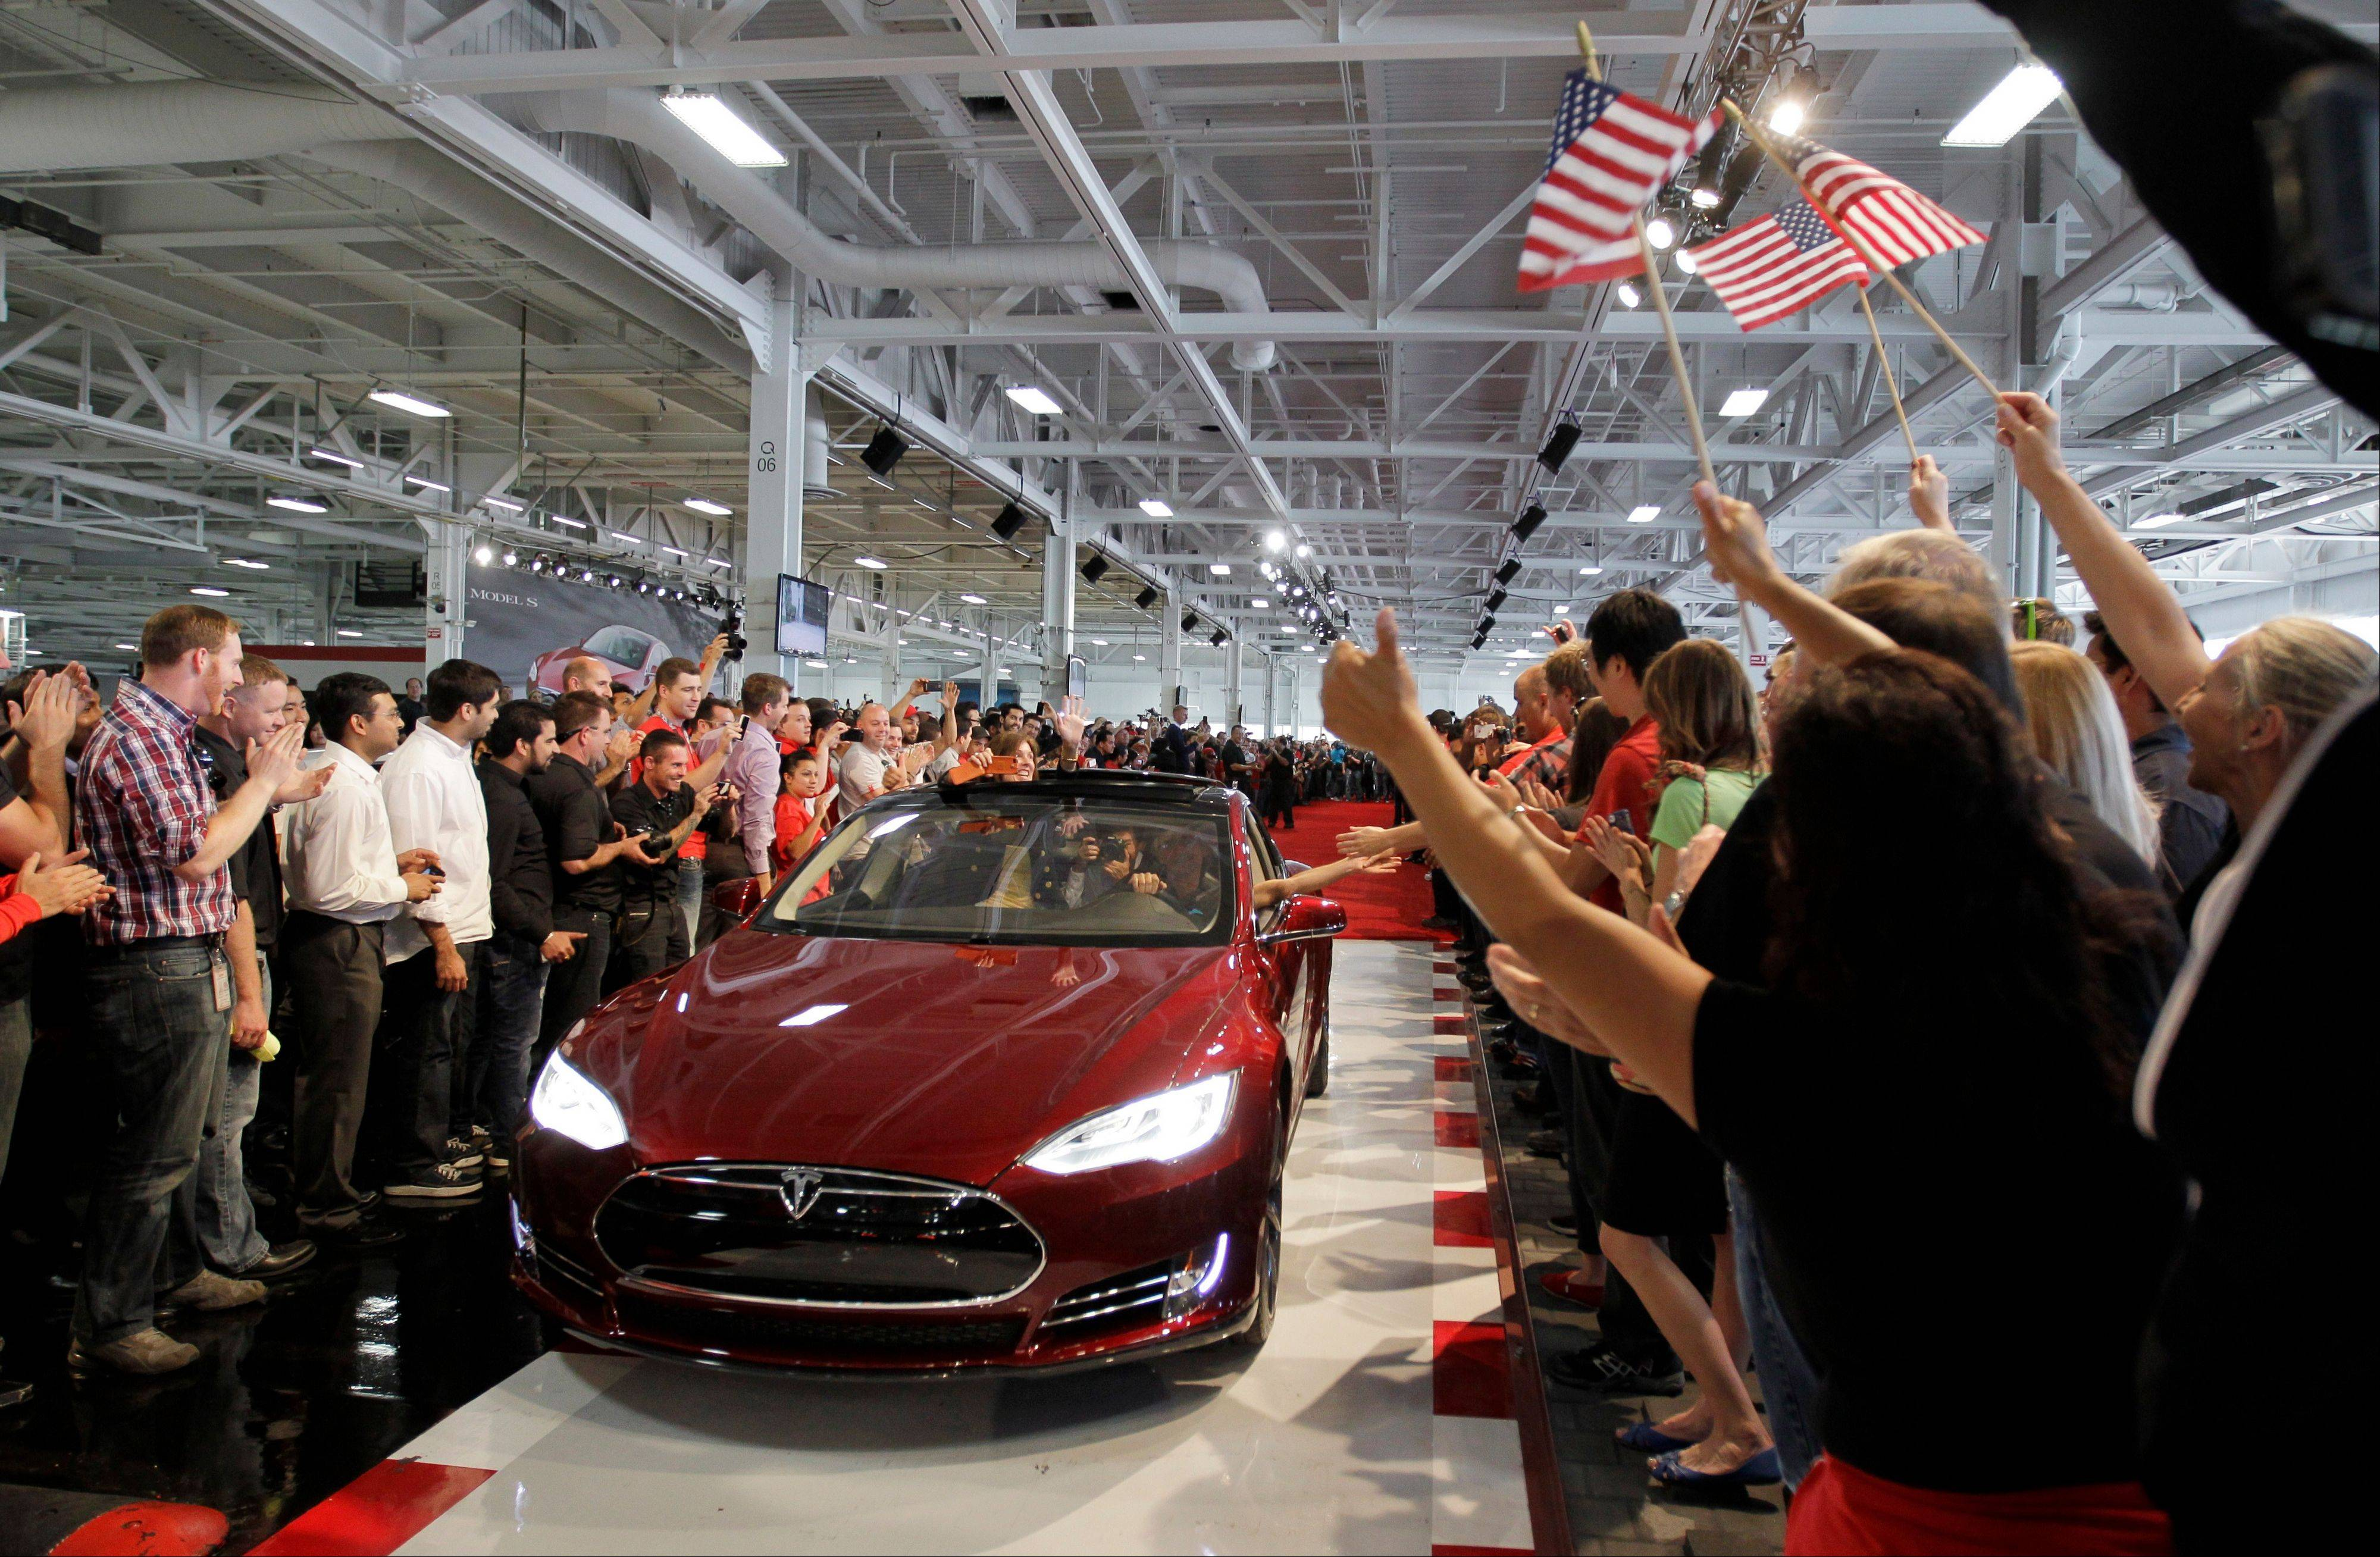 Tesla workers cheer on the first Tesla Model S cars sold during a rally at the Tesla factory in Fremont, Calif.